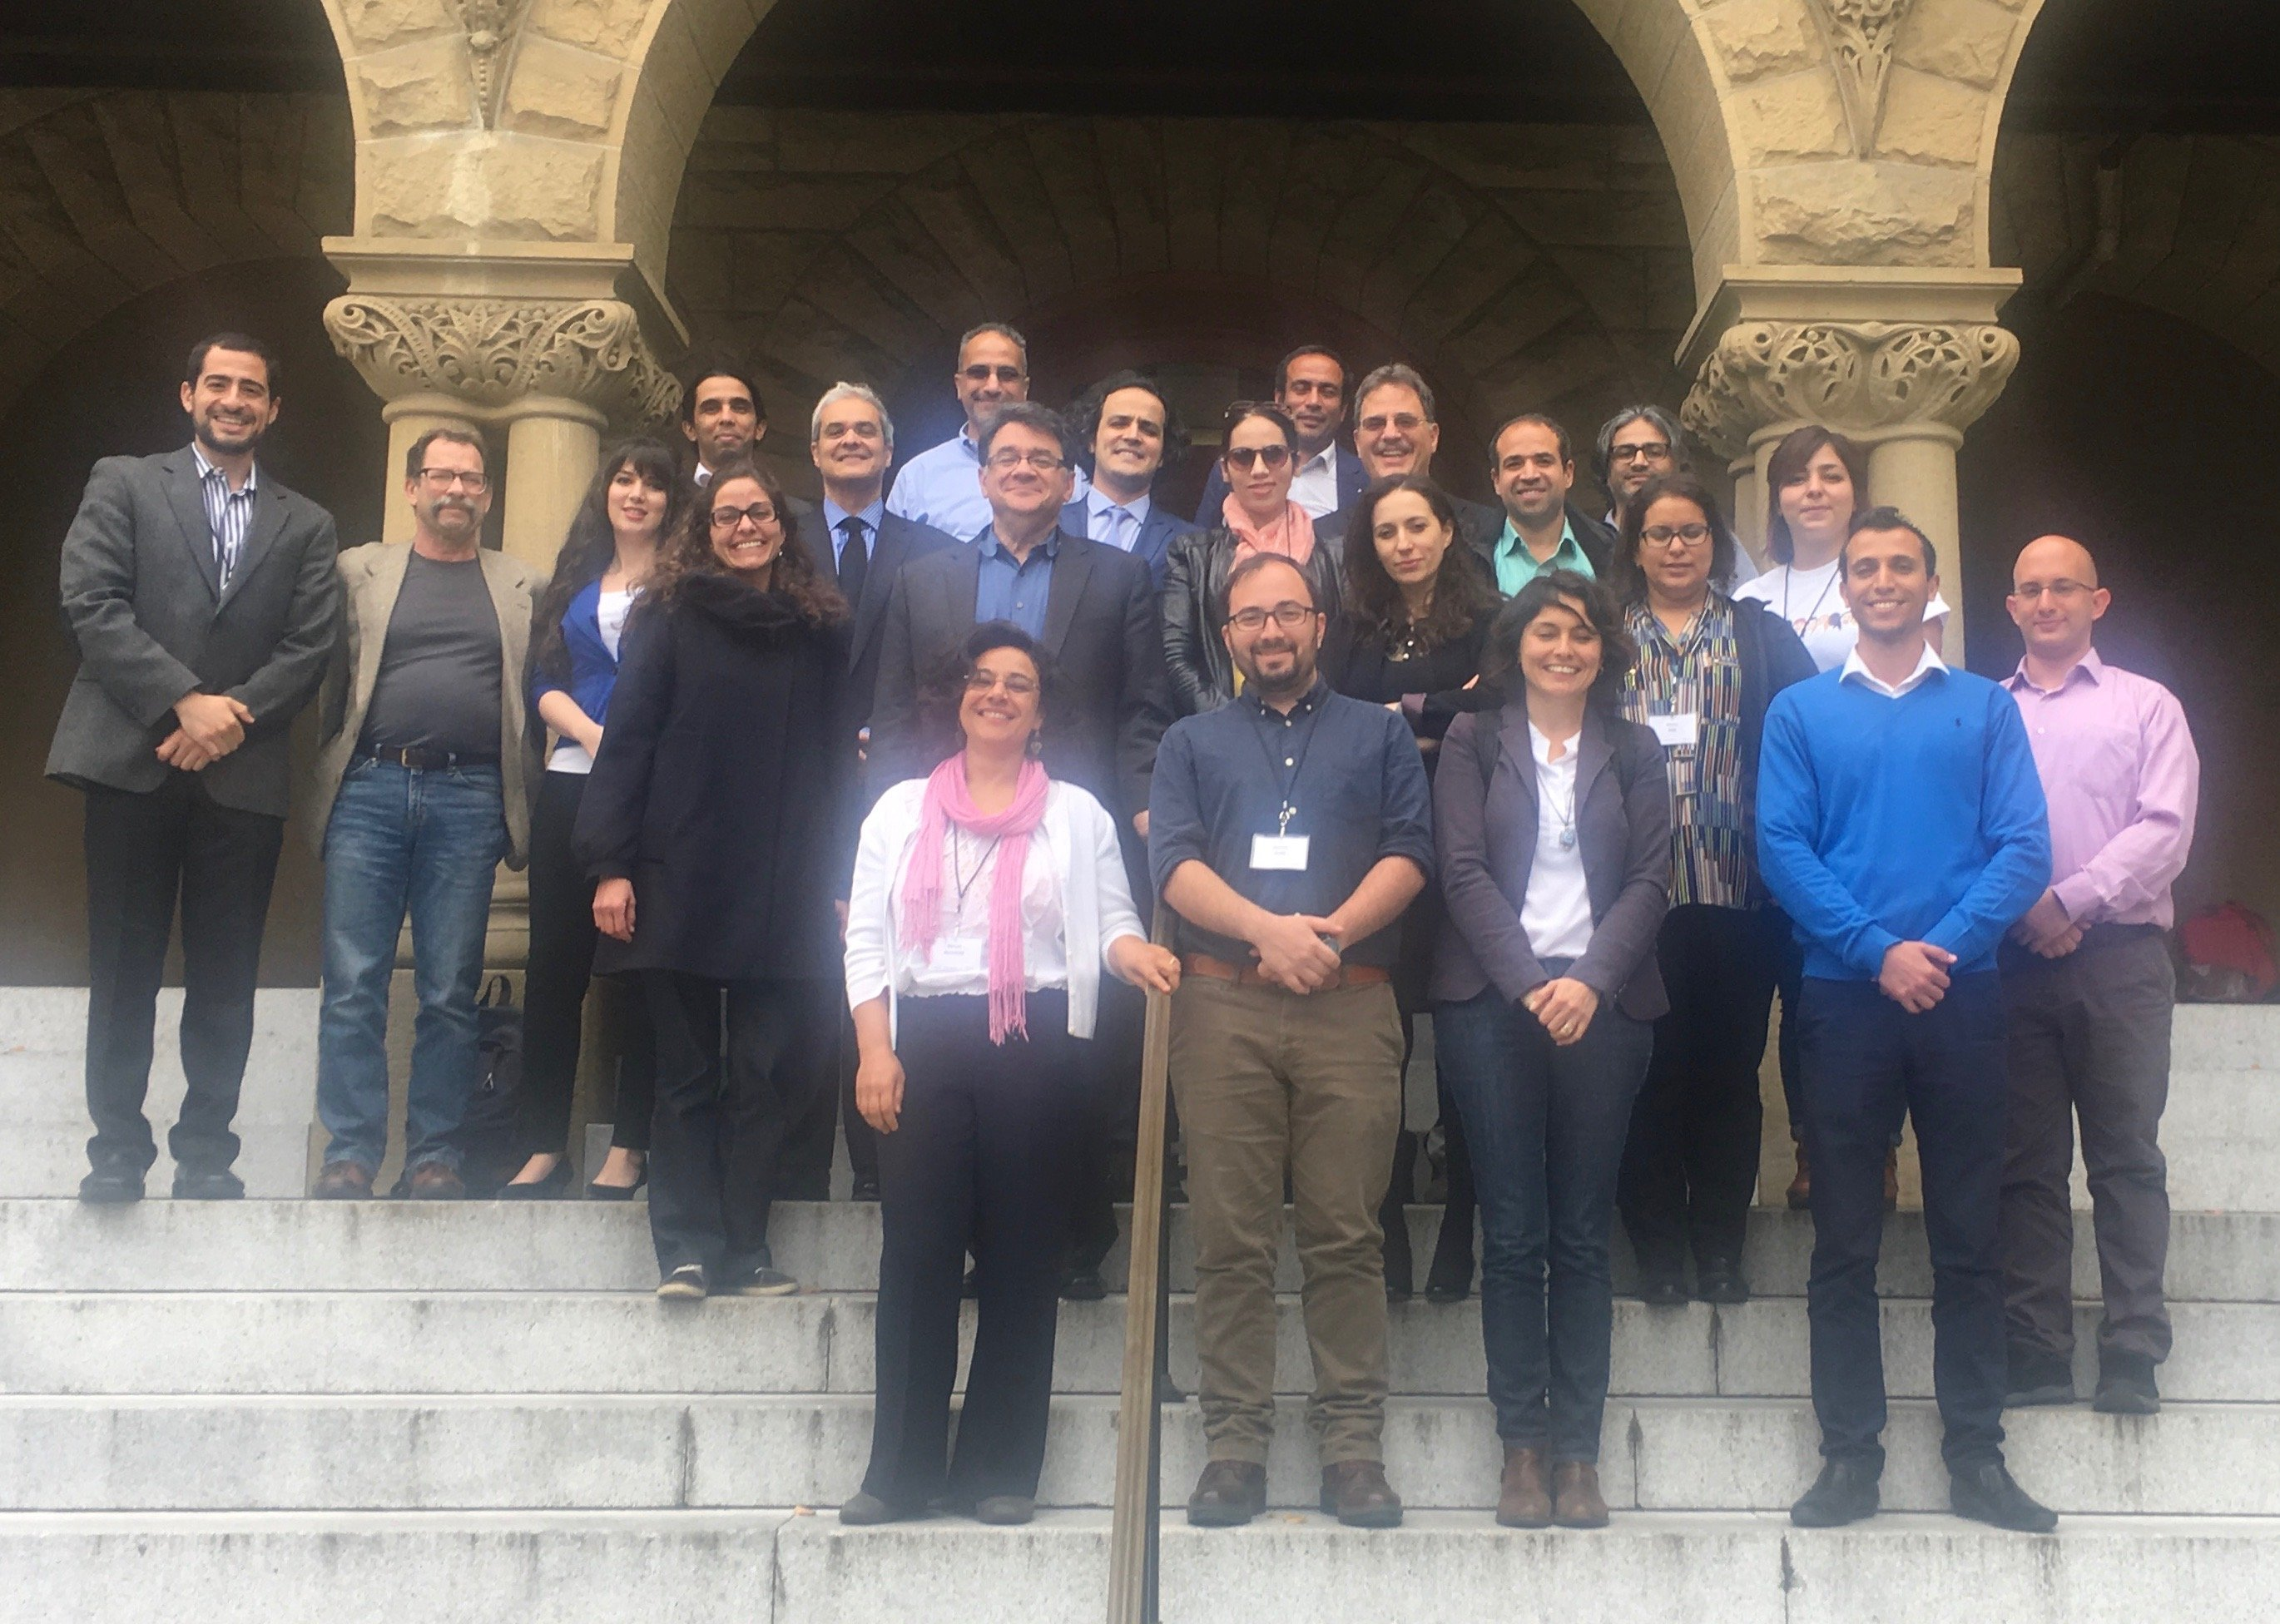 group photo from conference